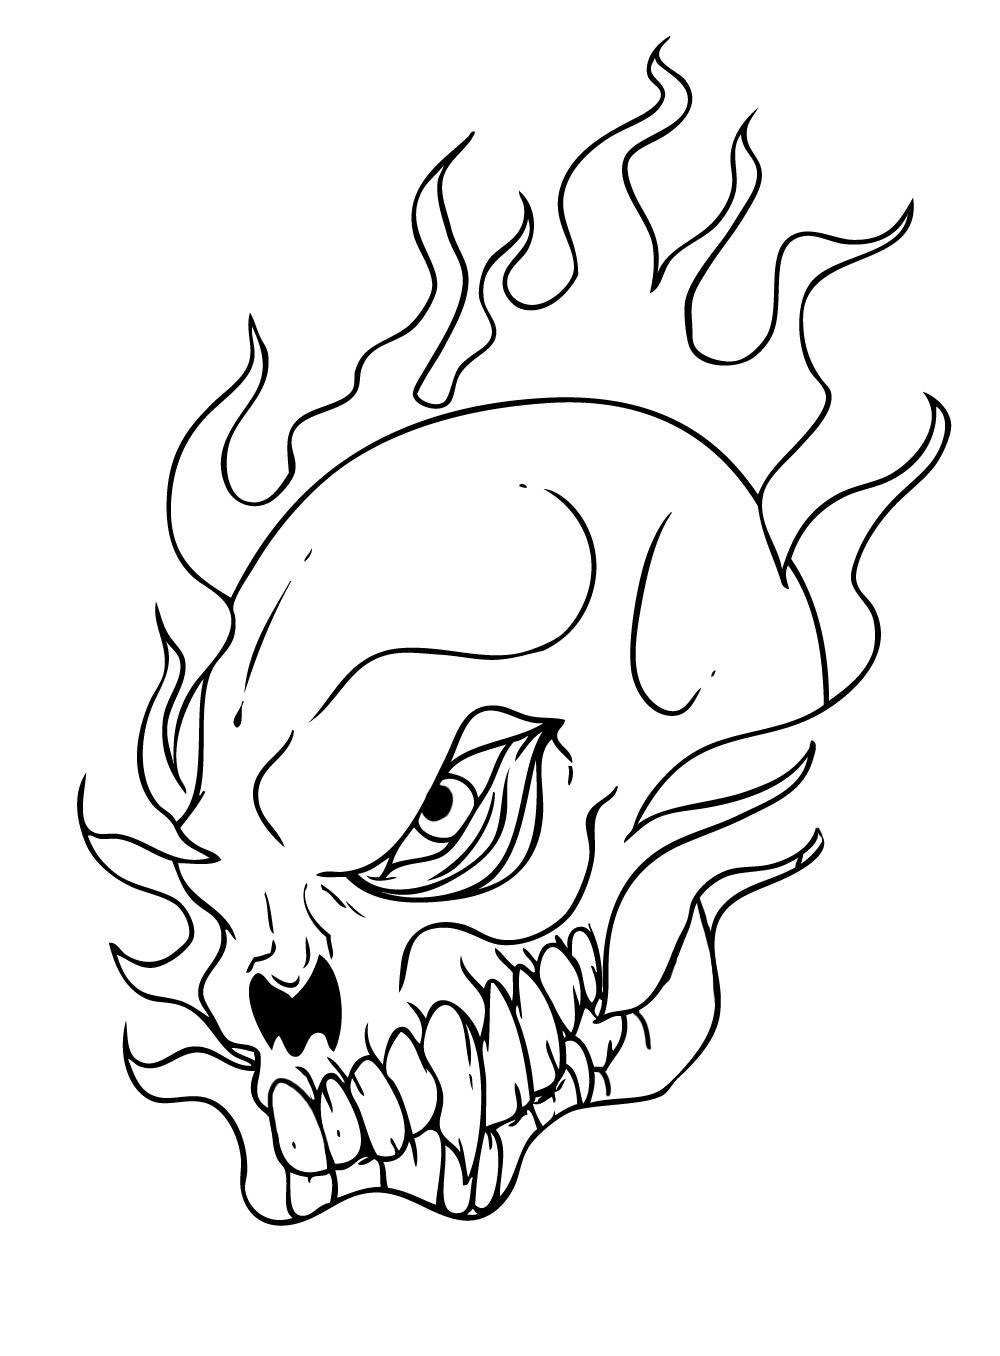 skulls to color free printable skull coloring pages for kids color skulls to